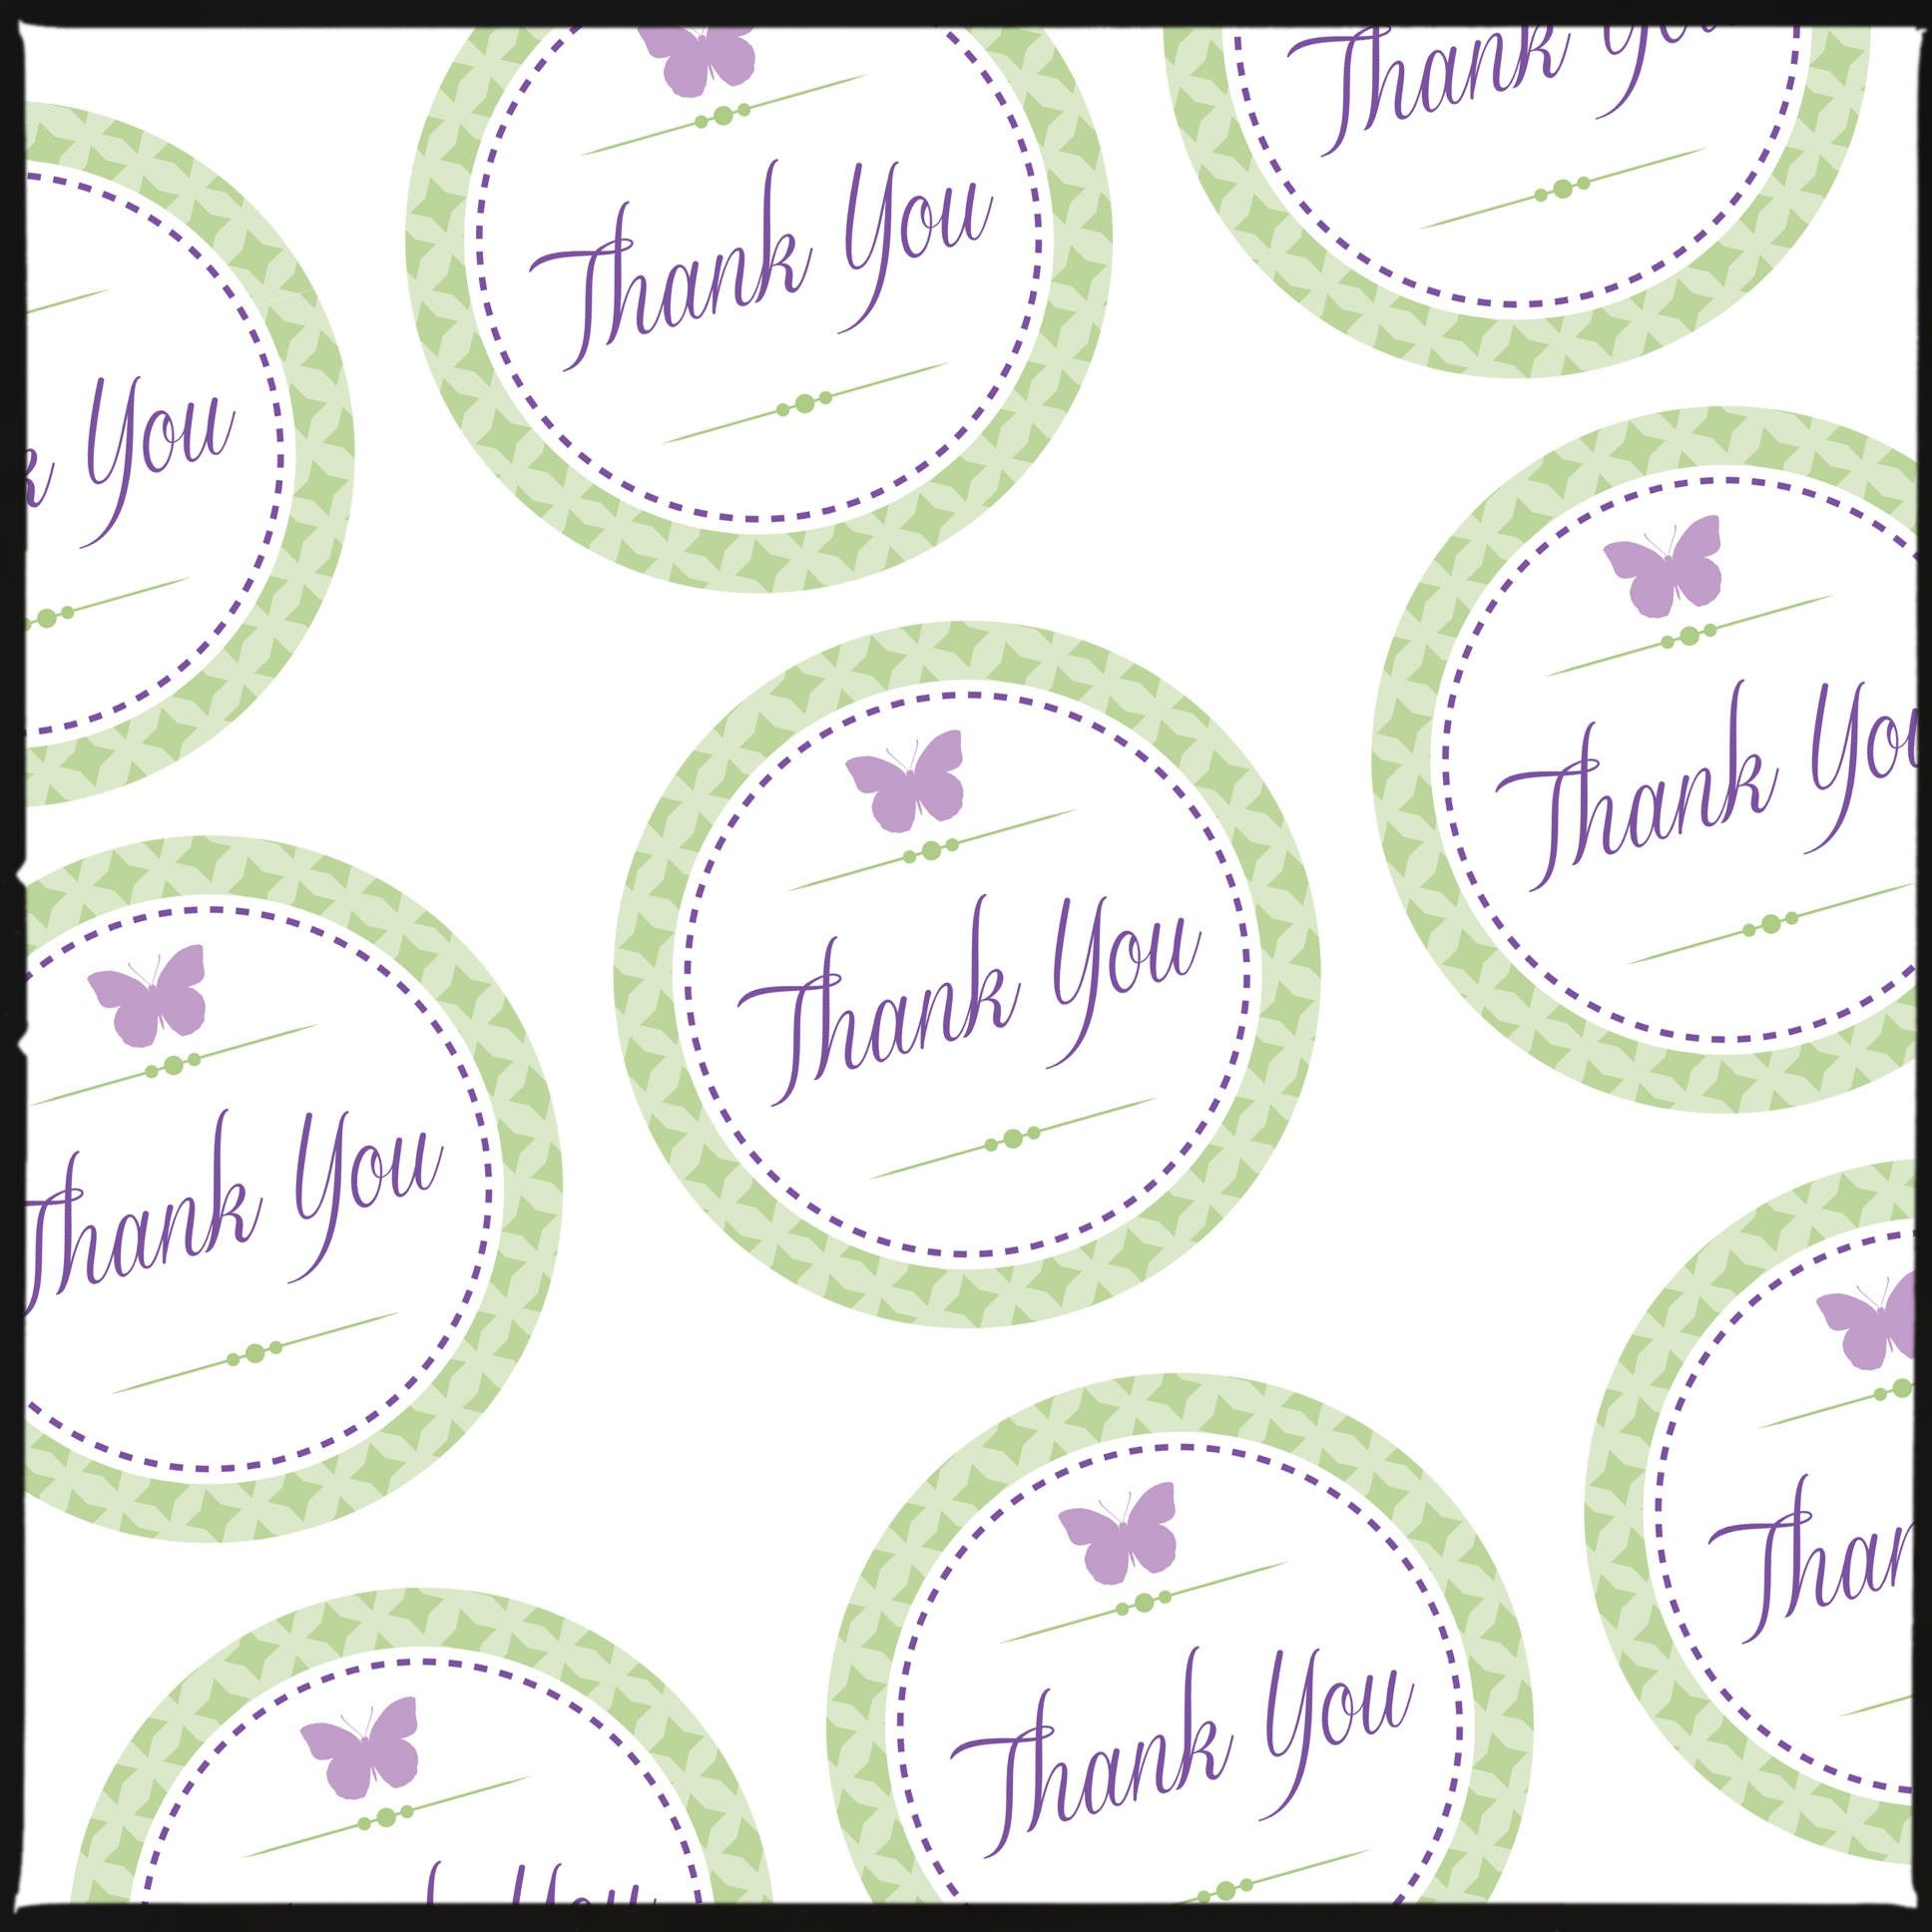 Thank You Tags For Pretty Gift Bags (& A Free Download For You - Thank You For Coming Free Printable Tags